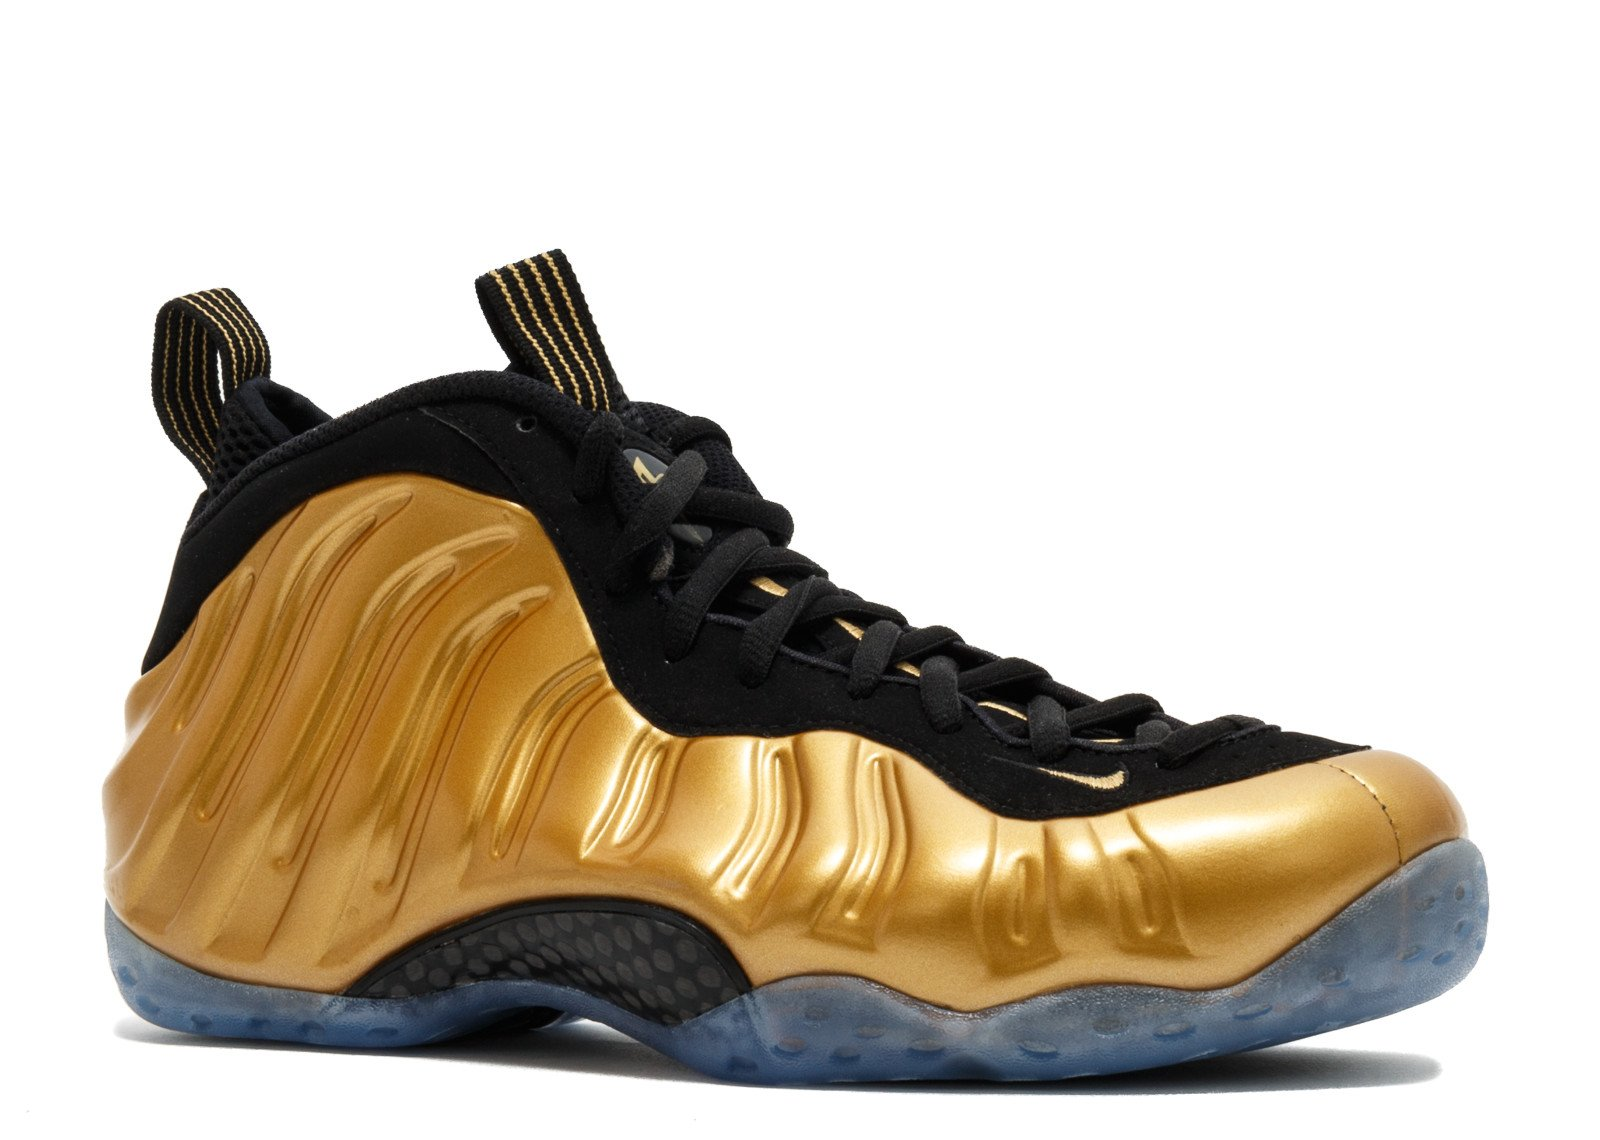 7bcacb6b57376 NIKE AIR Foamposite ONE –  Metallic Gold  – 314996-700 – Size 11